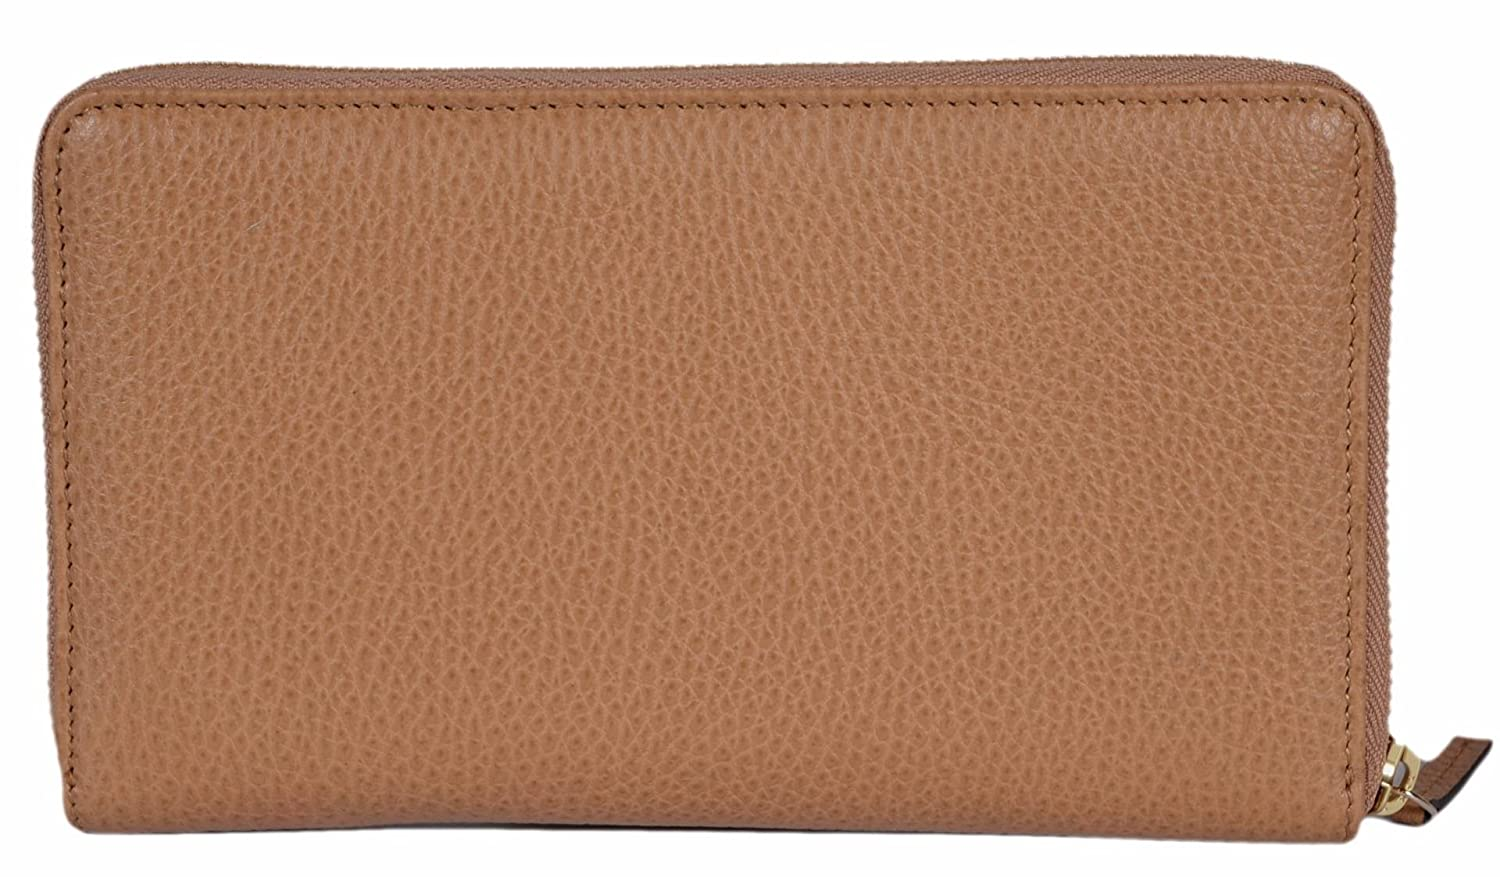 f40e2daba63 Amazon.com  Gucci Women s XL Textured Leather Zip Around Travel Clutch  Wallet (Whisky Beige)  Shoes